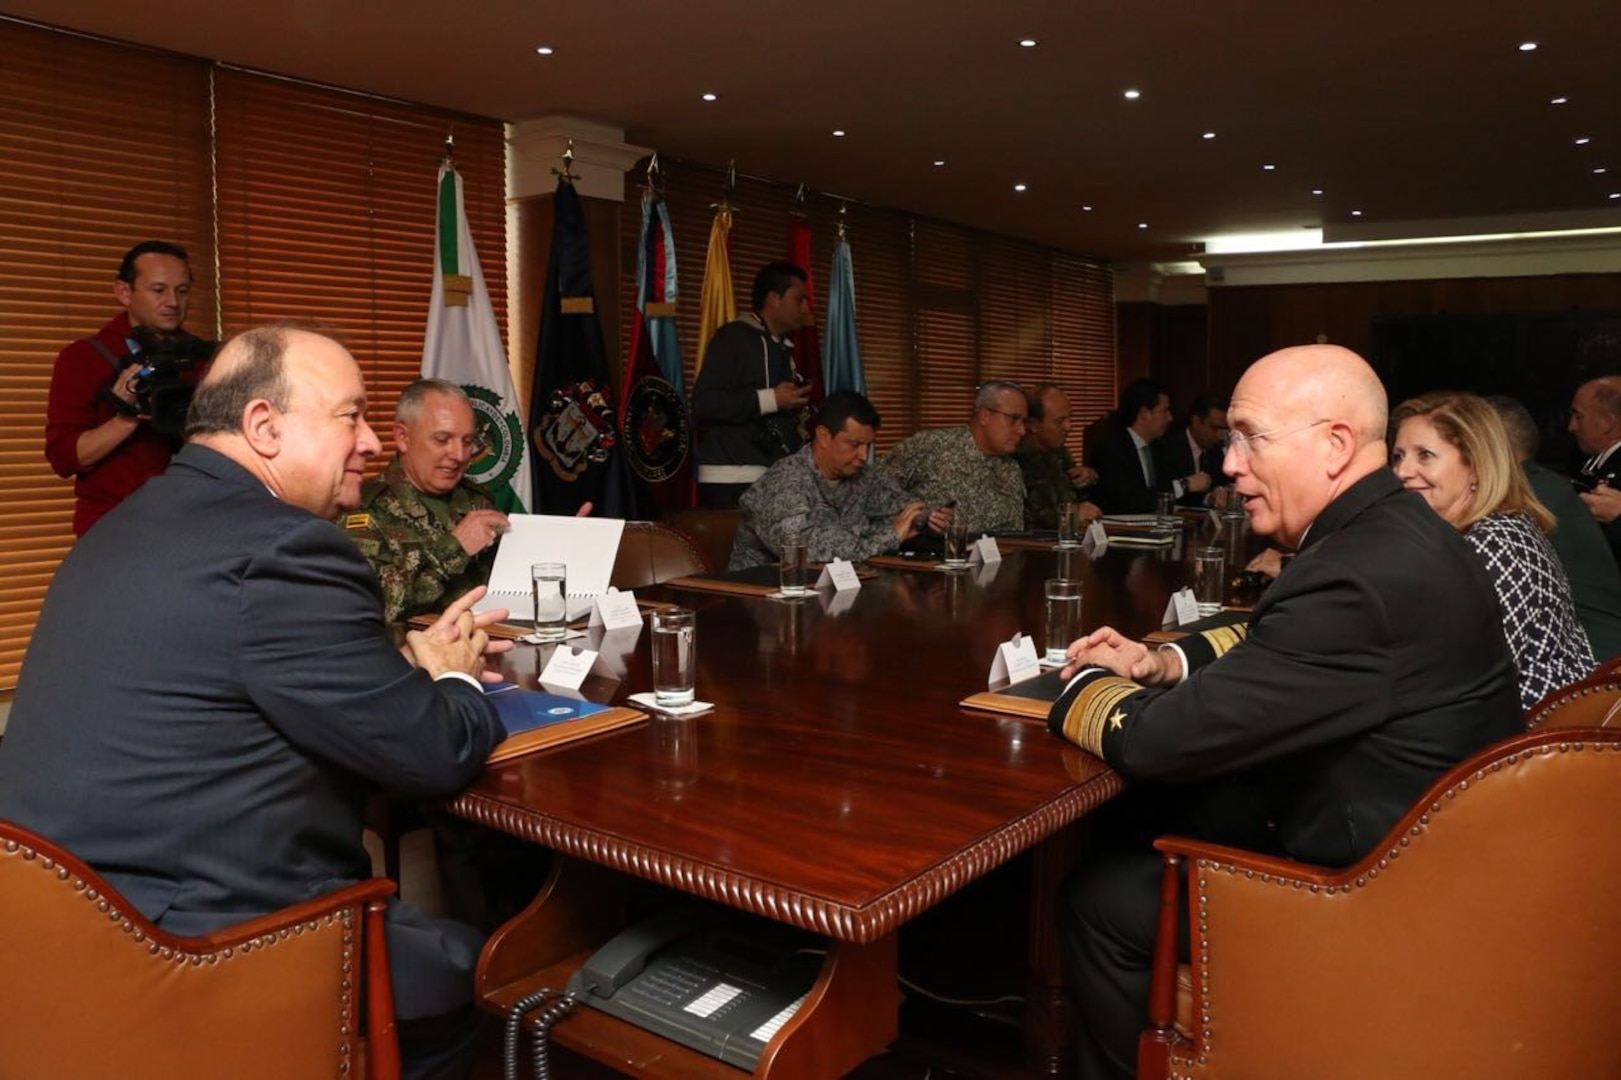 Security leaders speak at a conference table.